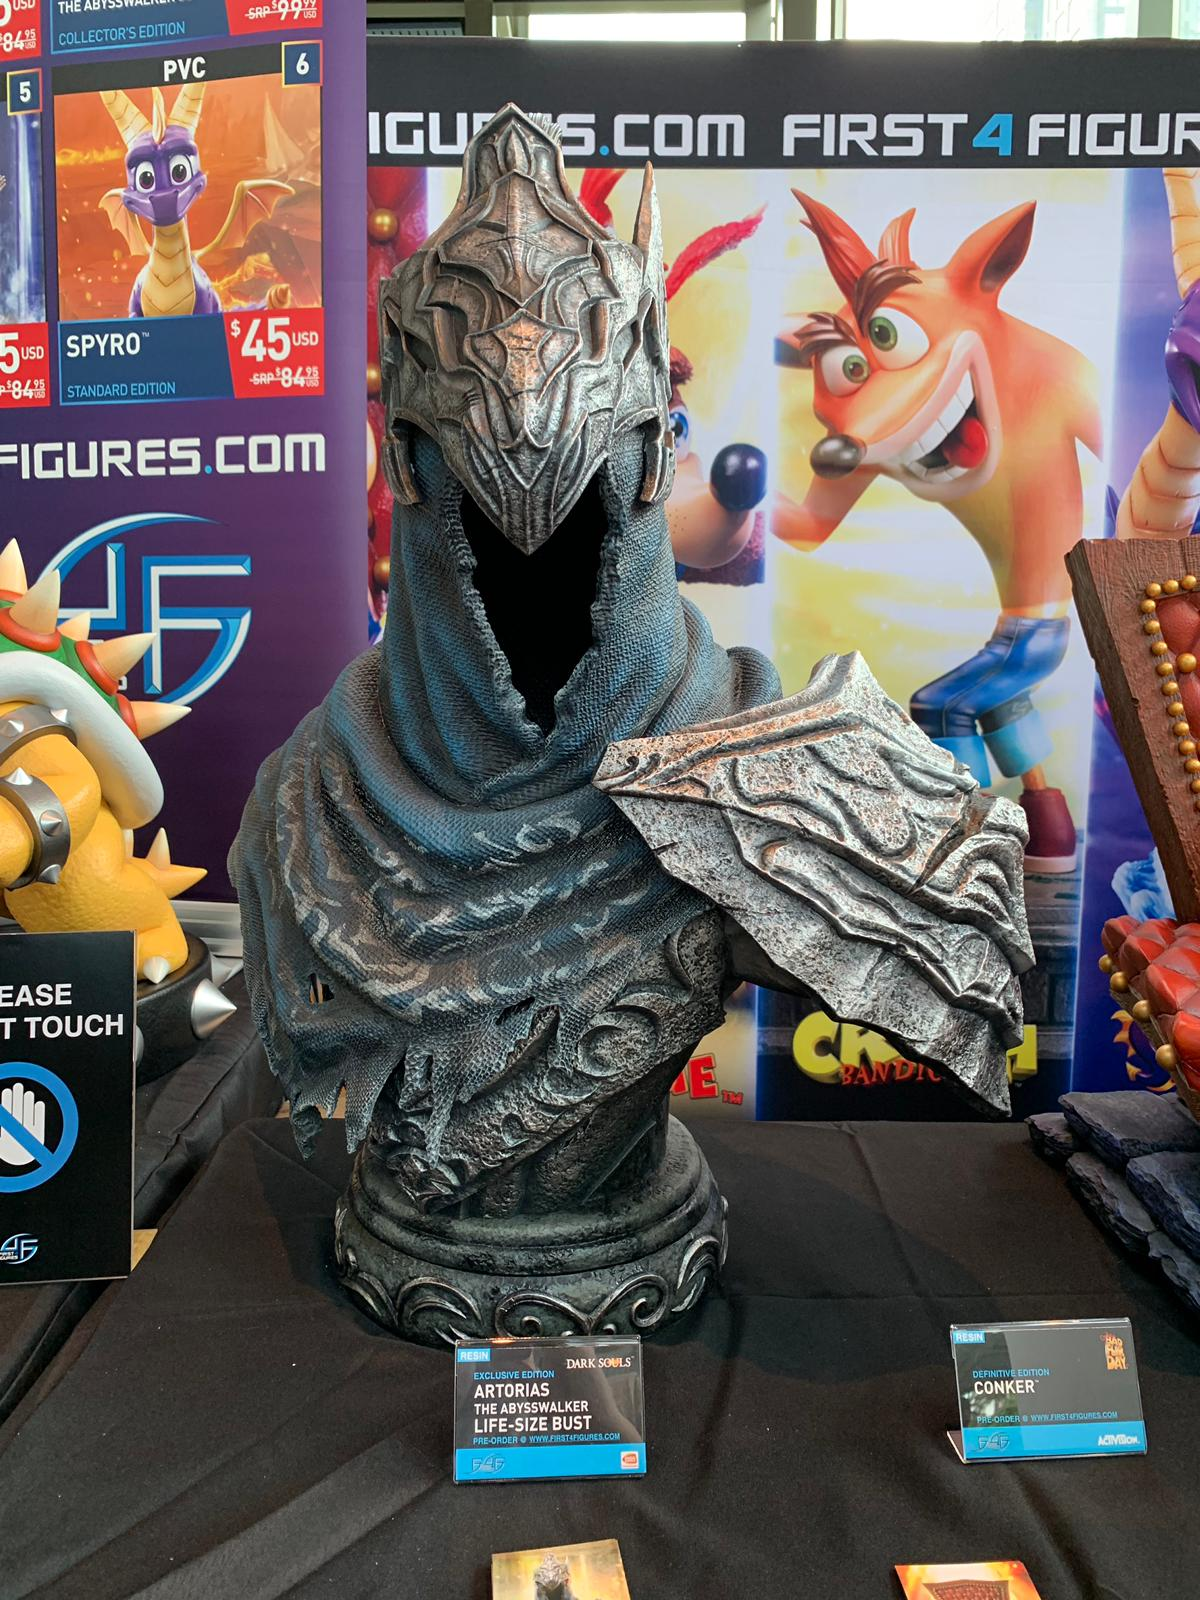 First 4 Figures Artorias the Abysswalker Life-Size Bust @ PAX West 2019